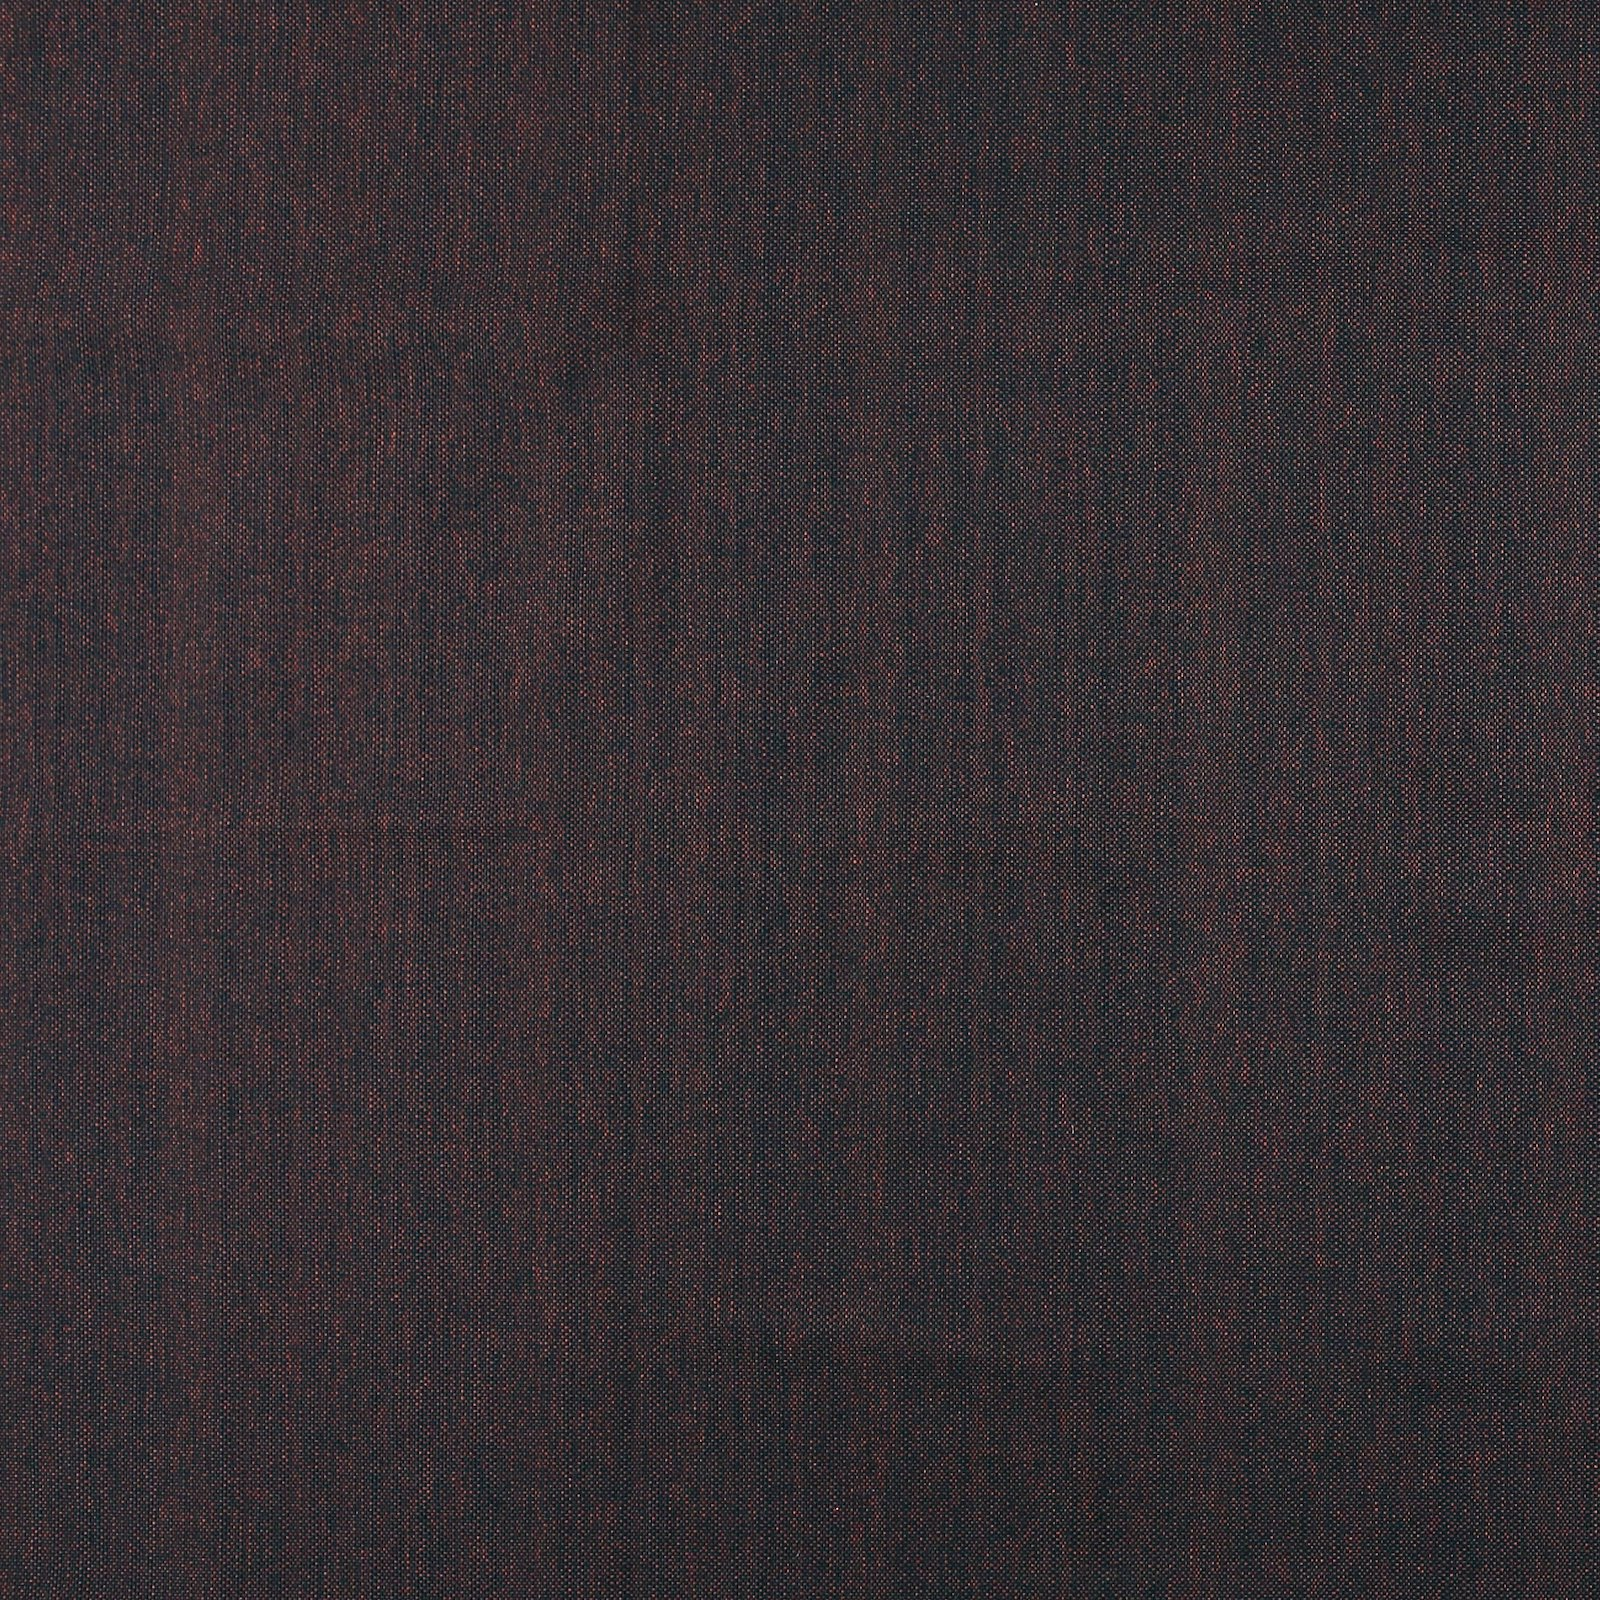 Upholstery fabric navy/chestnut brown 824157_pack_solid